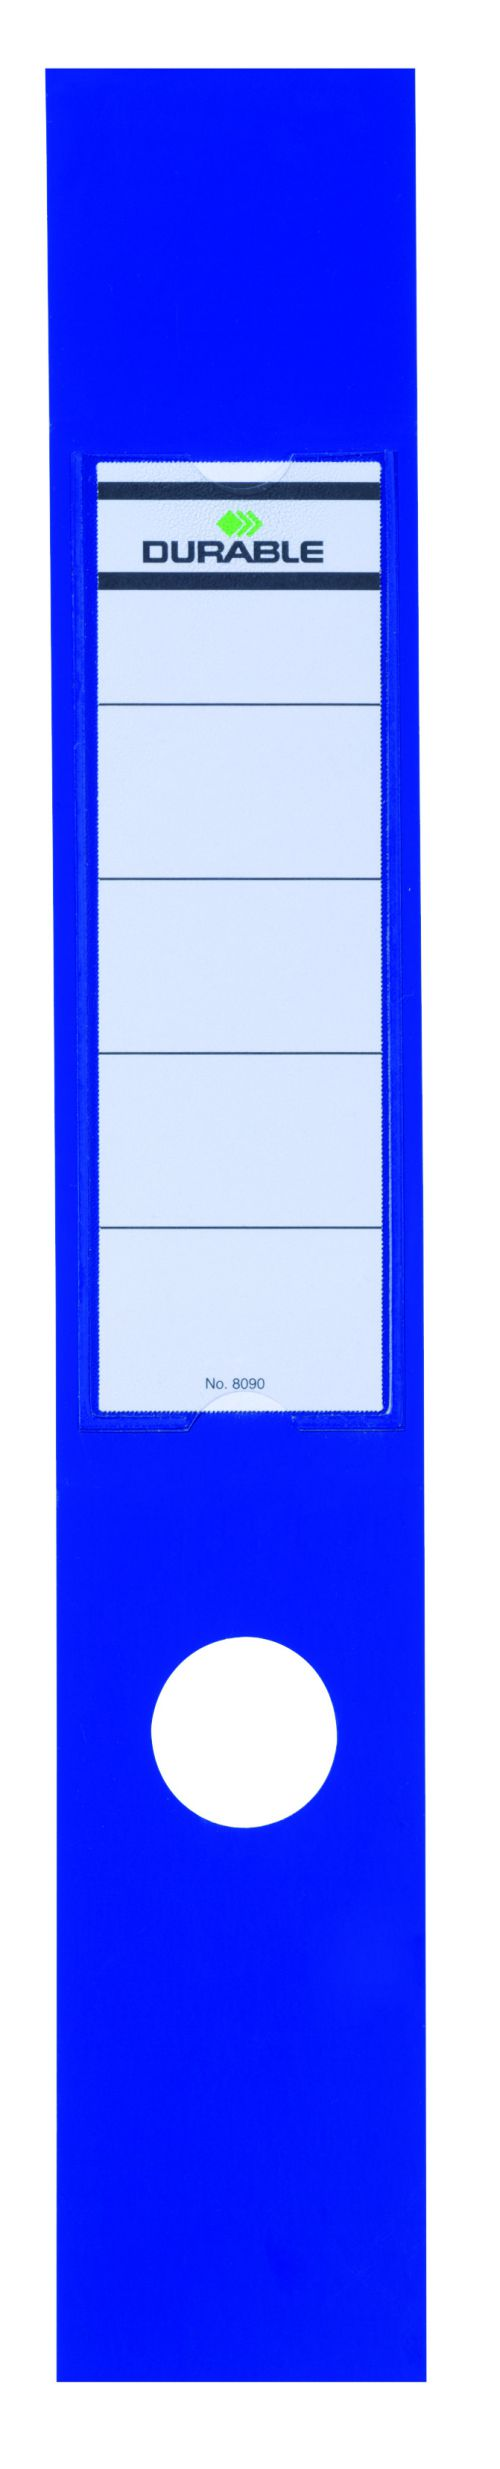 Durable Blue Ordofix File Spine Label (Pack of 10) 8090/06